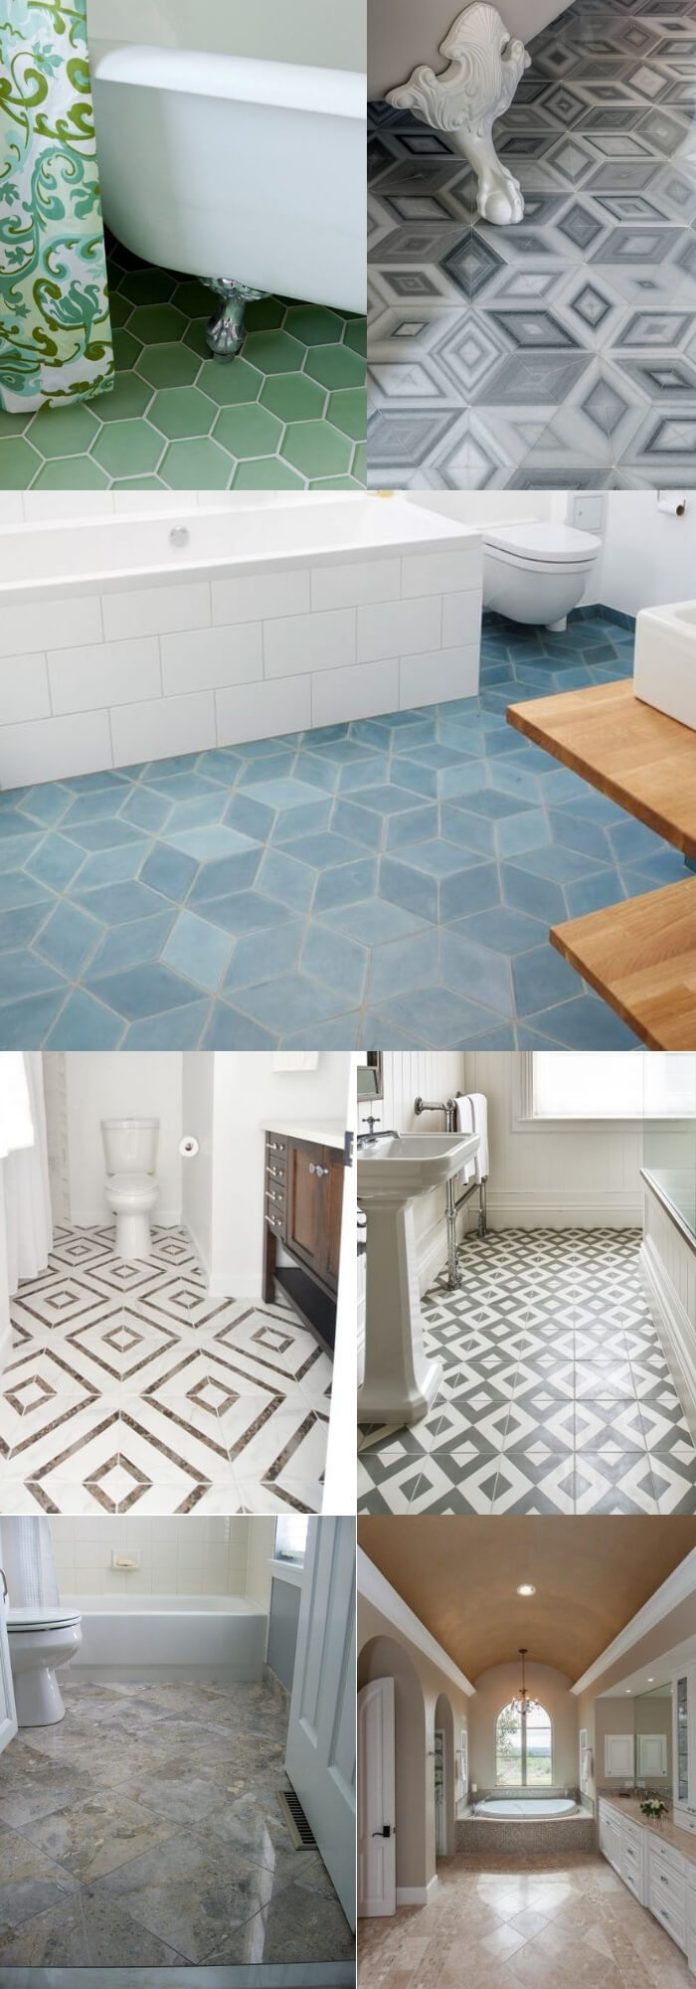 Diamond bathroom floor tile ideas